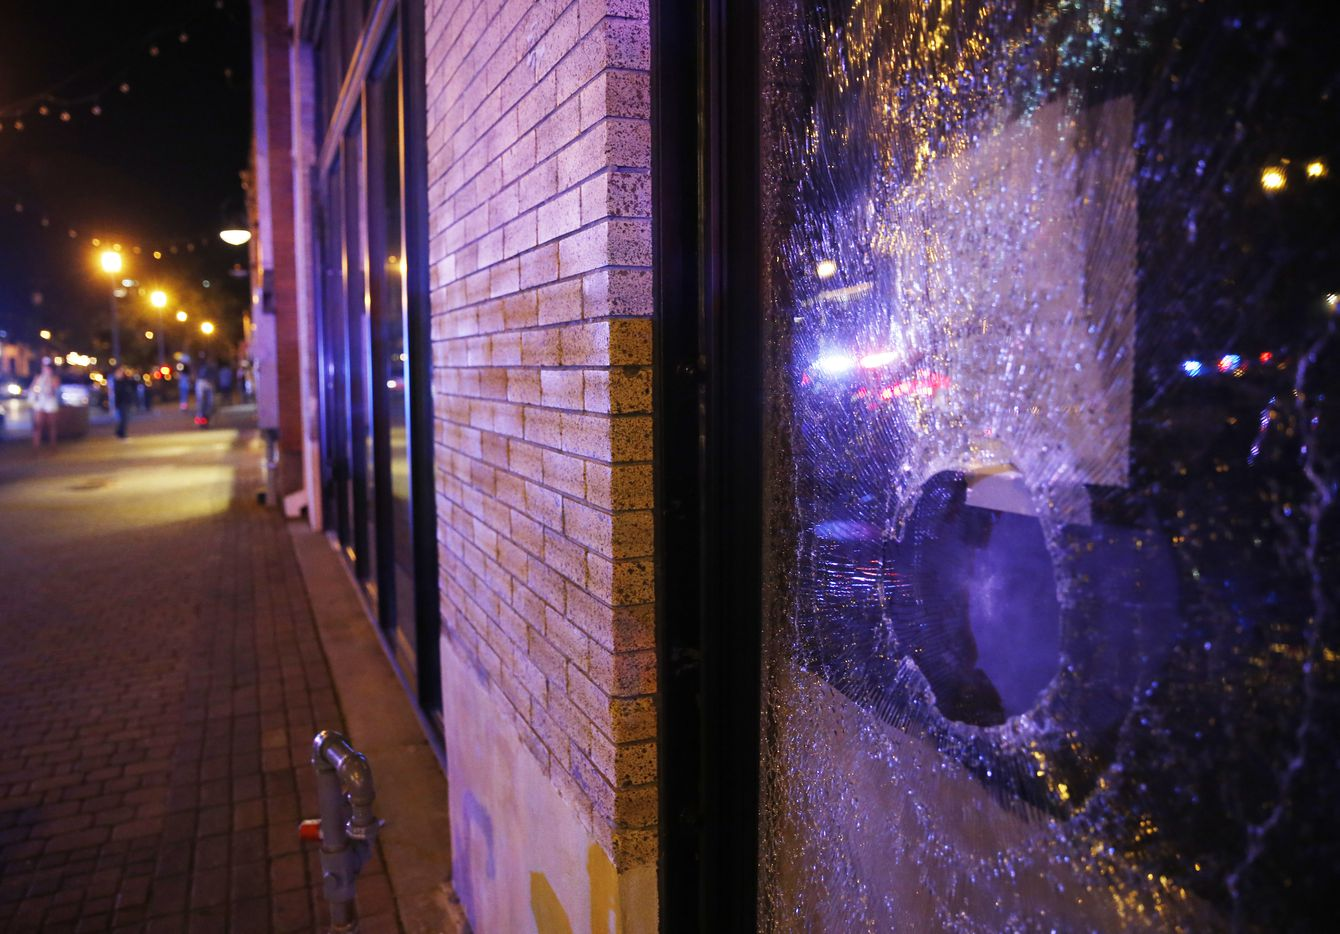 Busted window of a business along Main Street in Deep Ellum in downtown Dallas, on Friday, May 29, 2020. George Floyd died in police custody in Minneapolis on May 25.